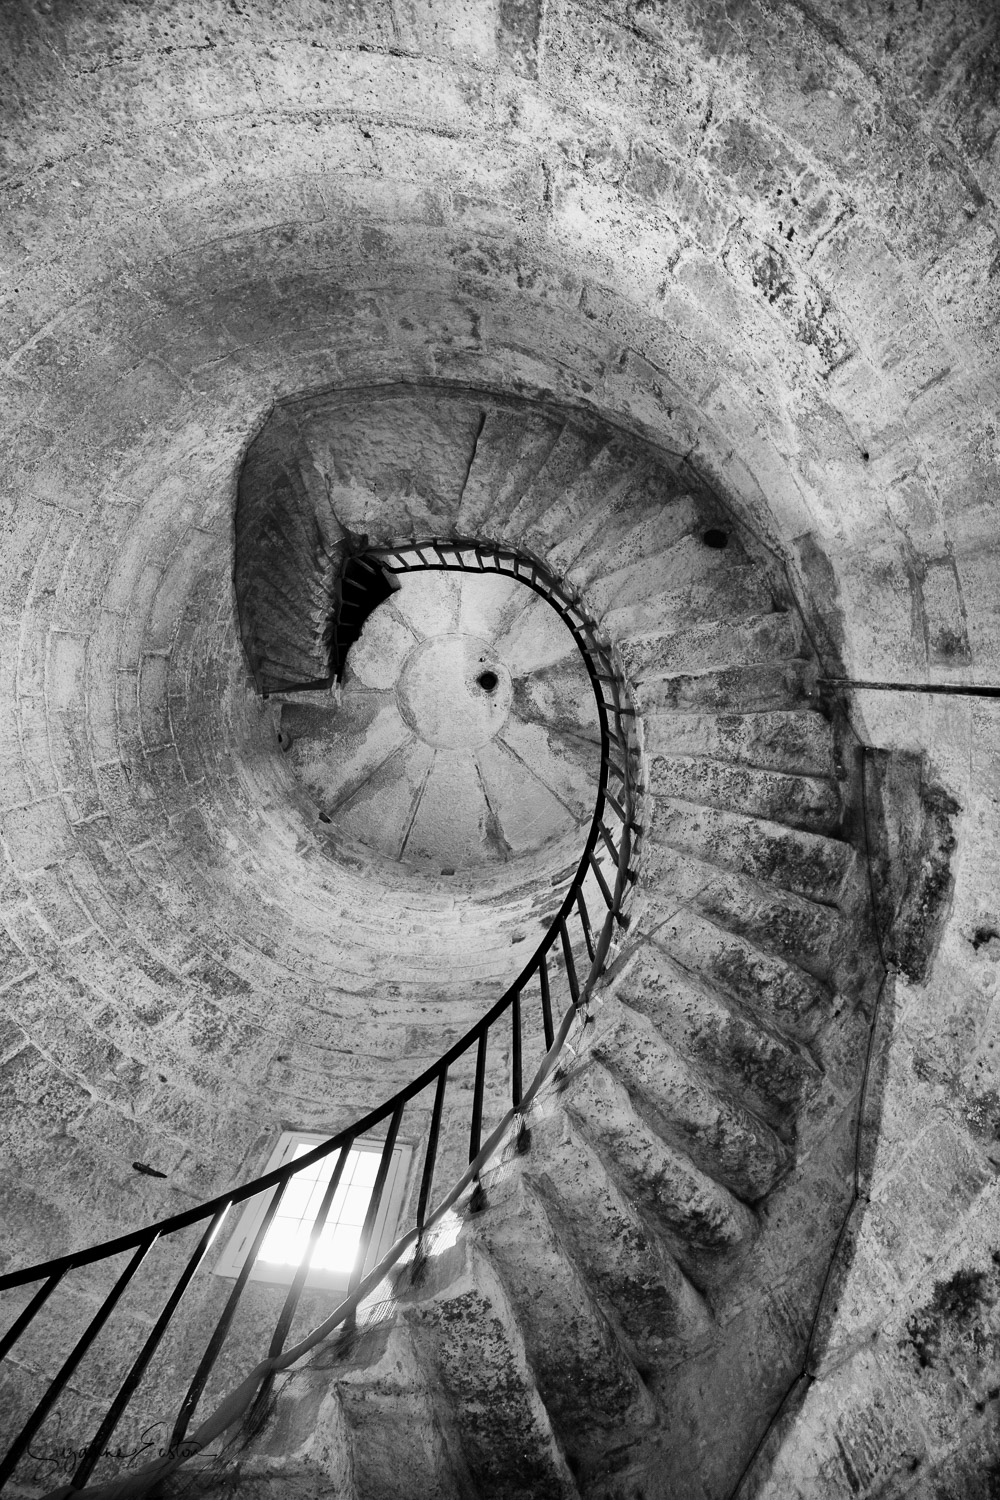 The spiral stairs of Lundy Old Light